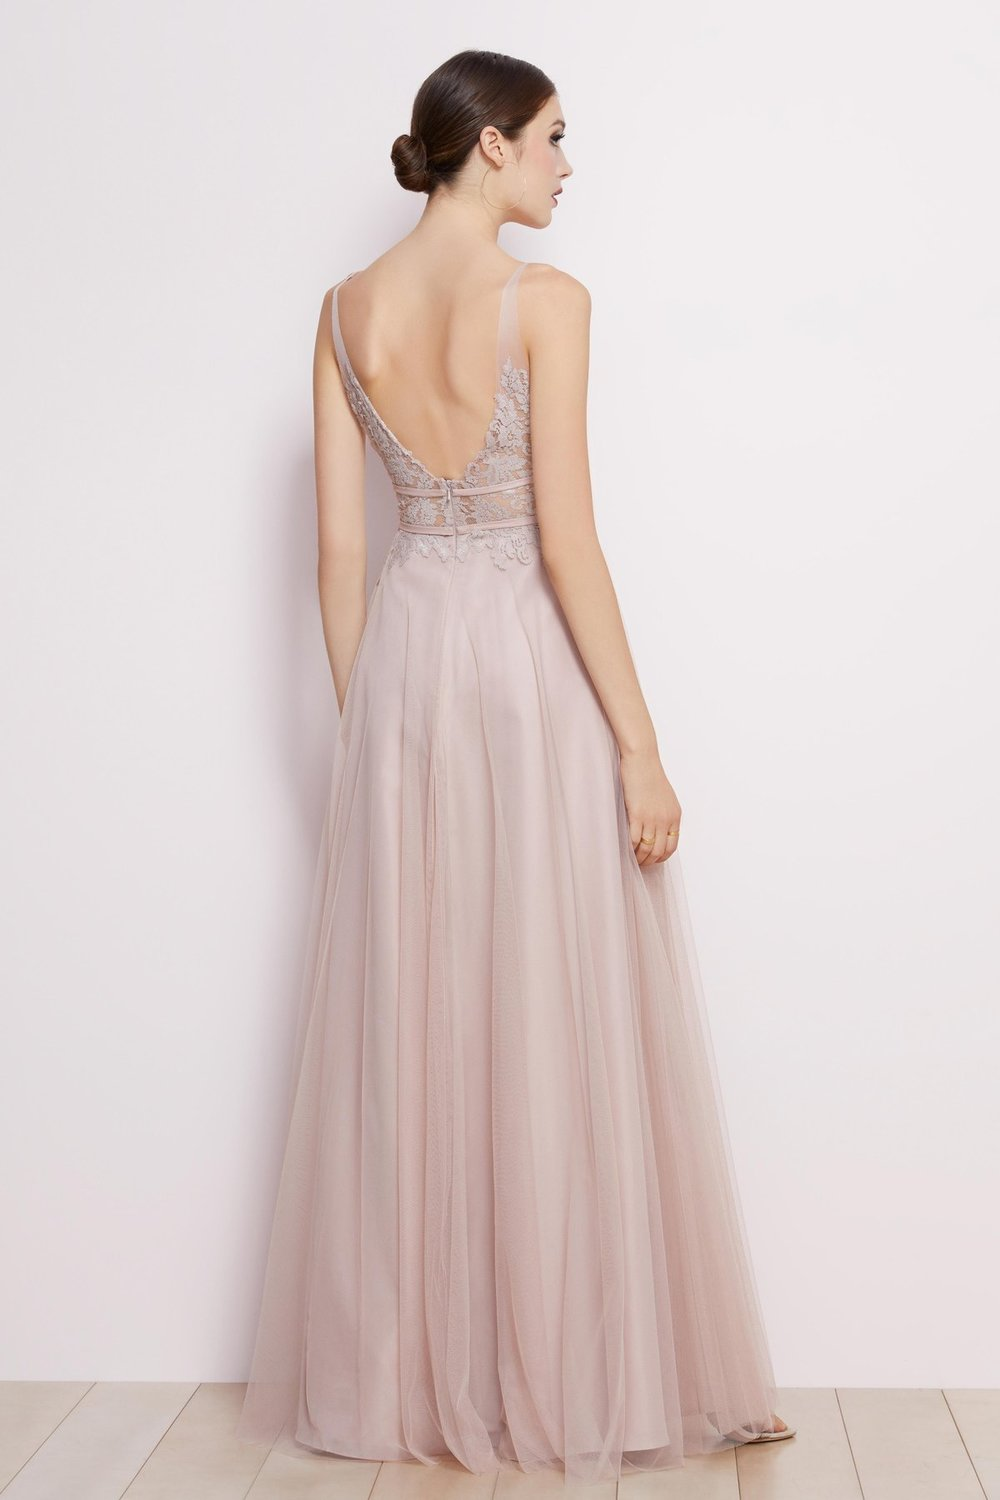 Back of Brielle dress by Watters Bridesmaids in blush lace and tulle